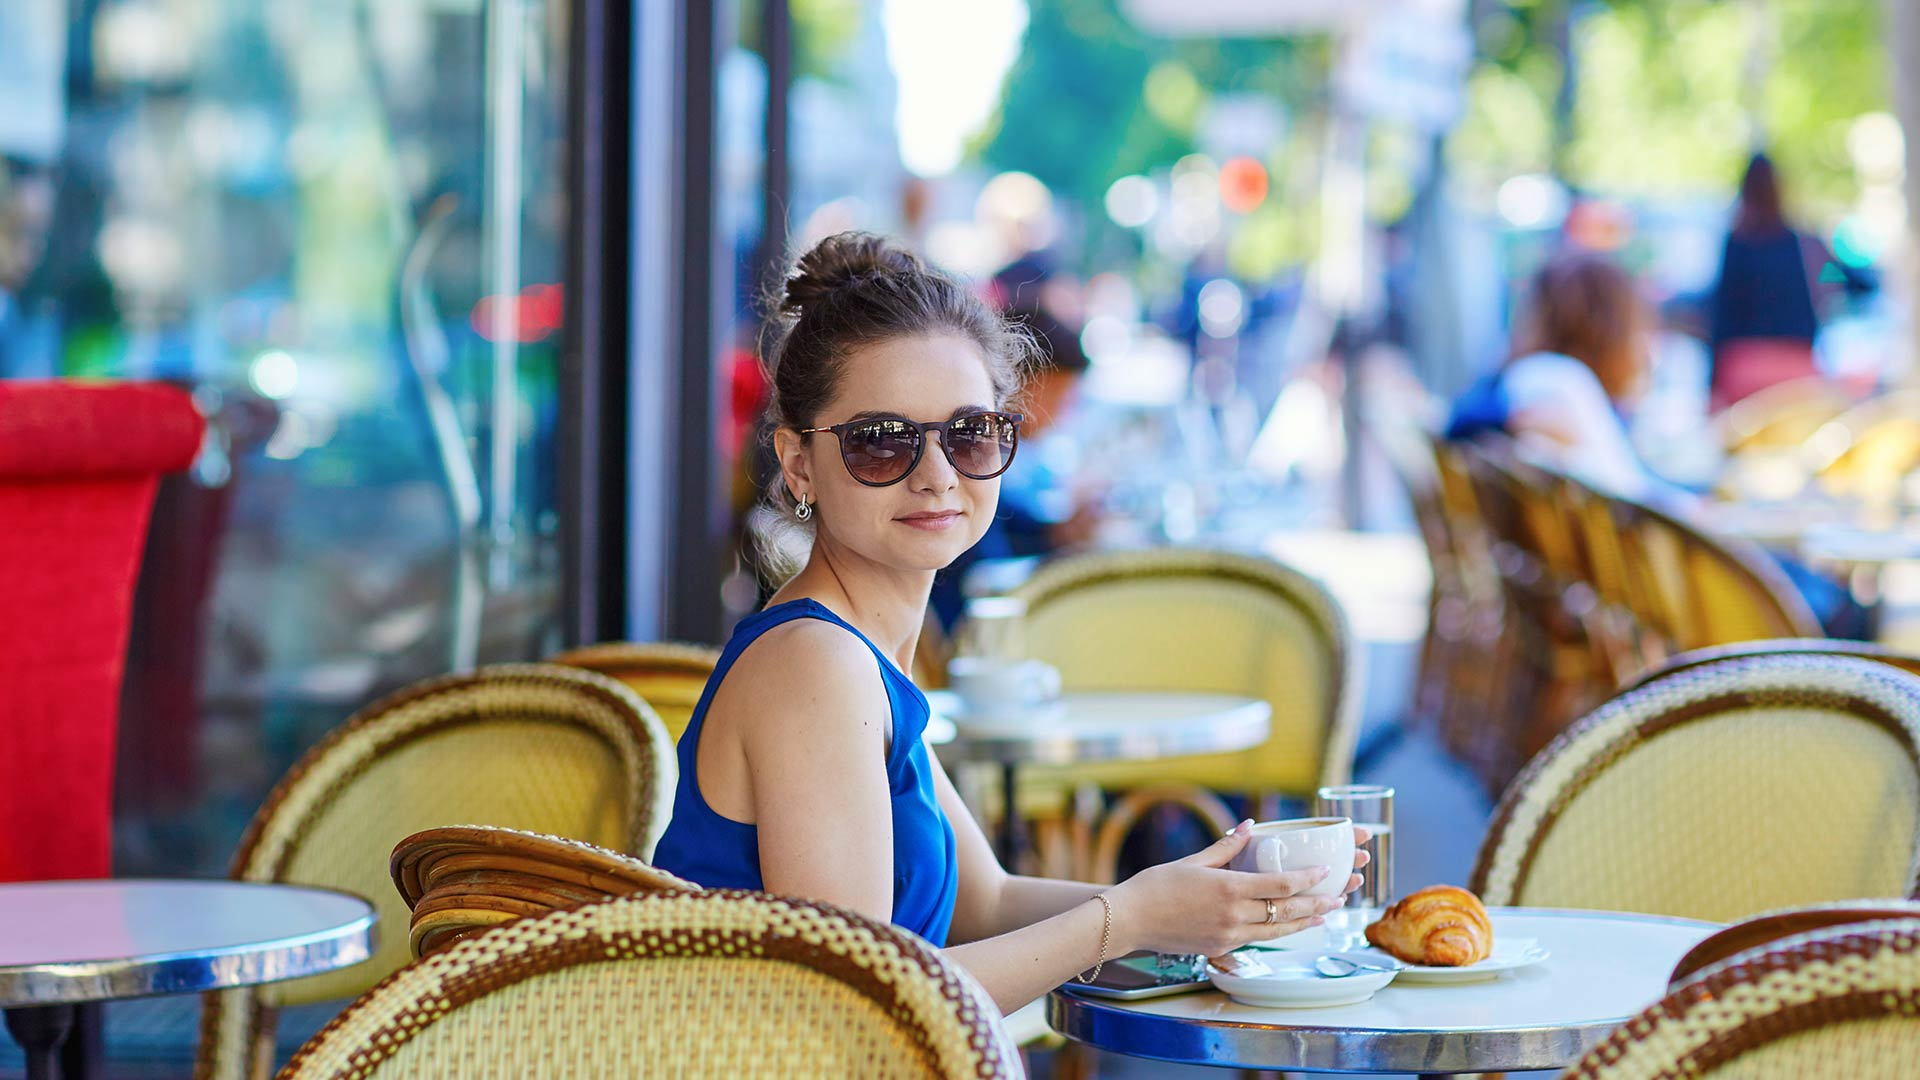 Woman wearing sunglasses, sitting in a cafe in an international location with coffee and a croissant.